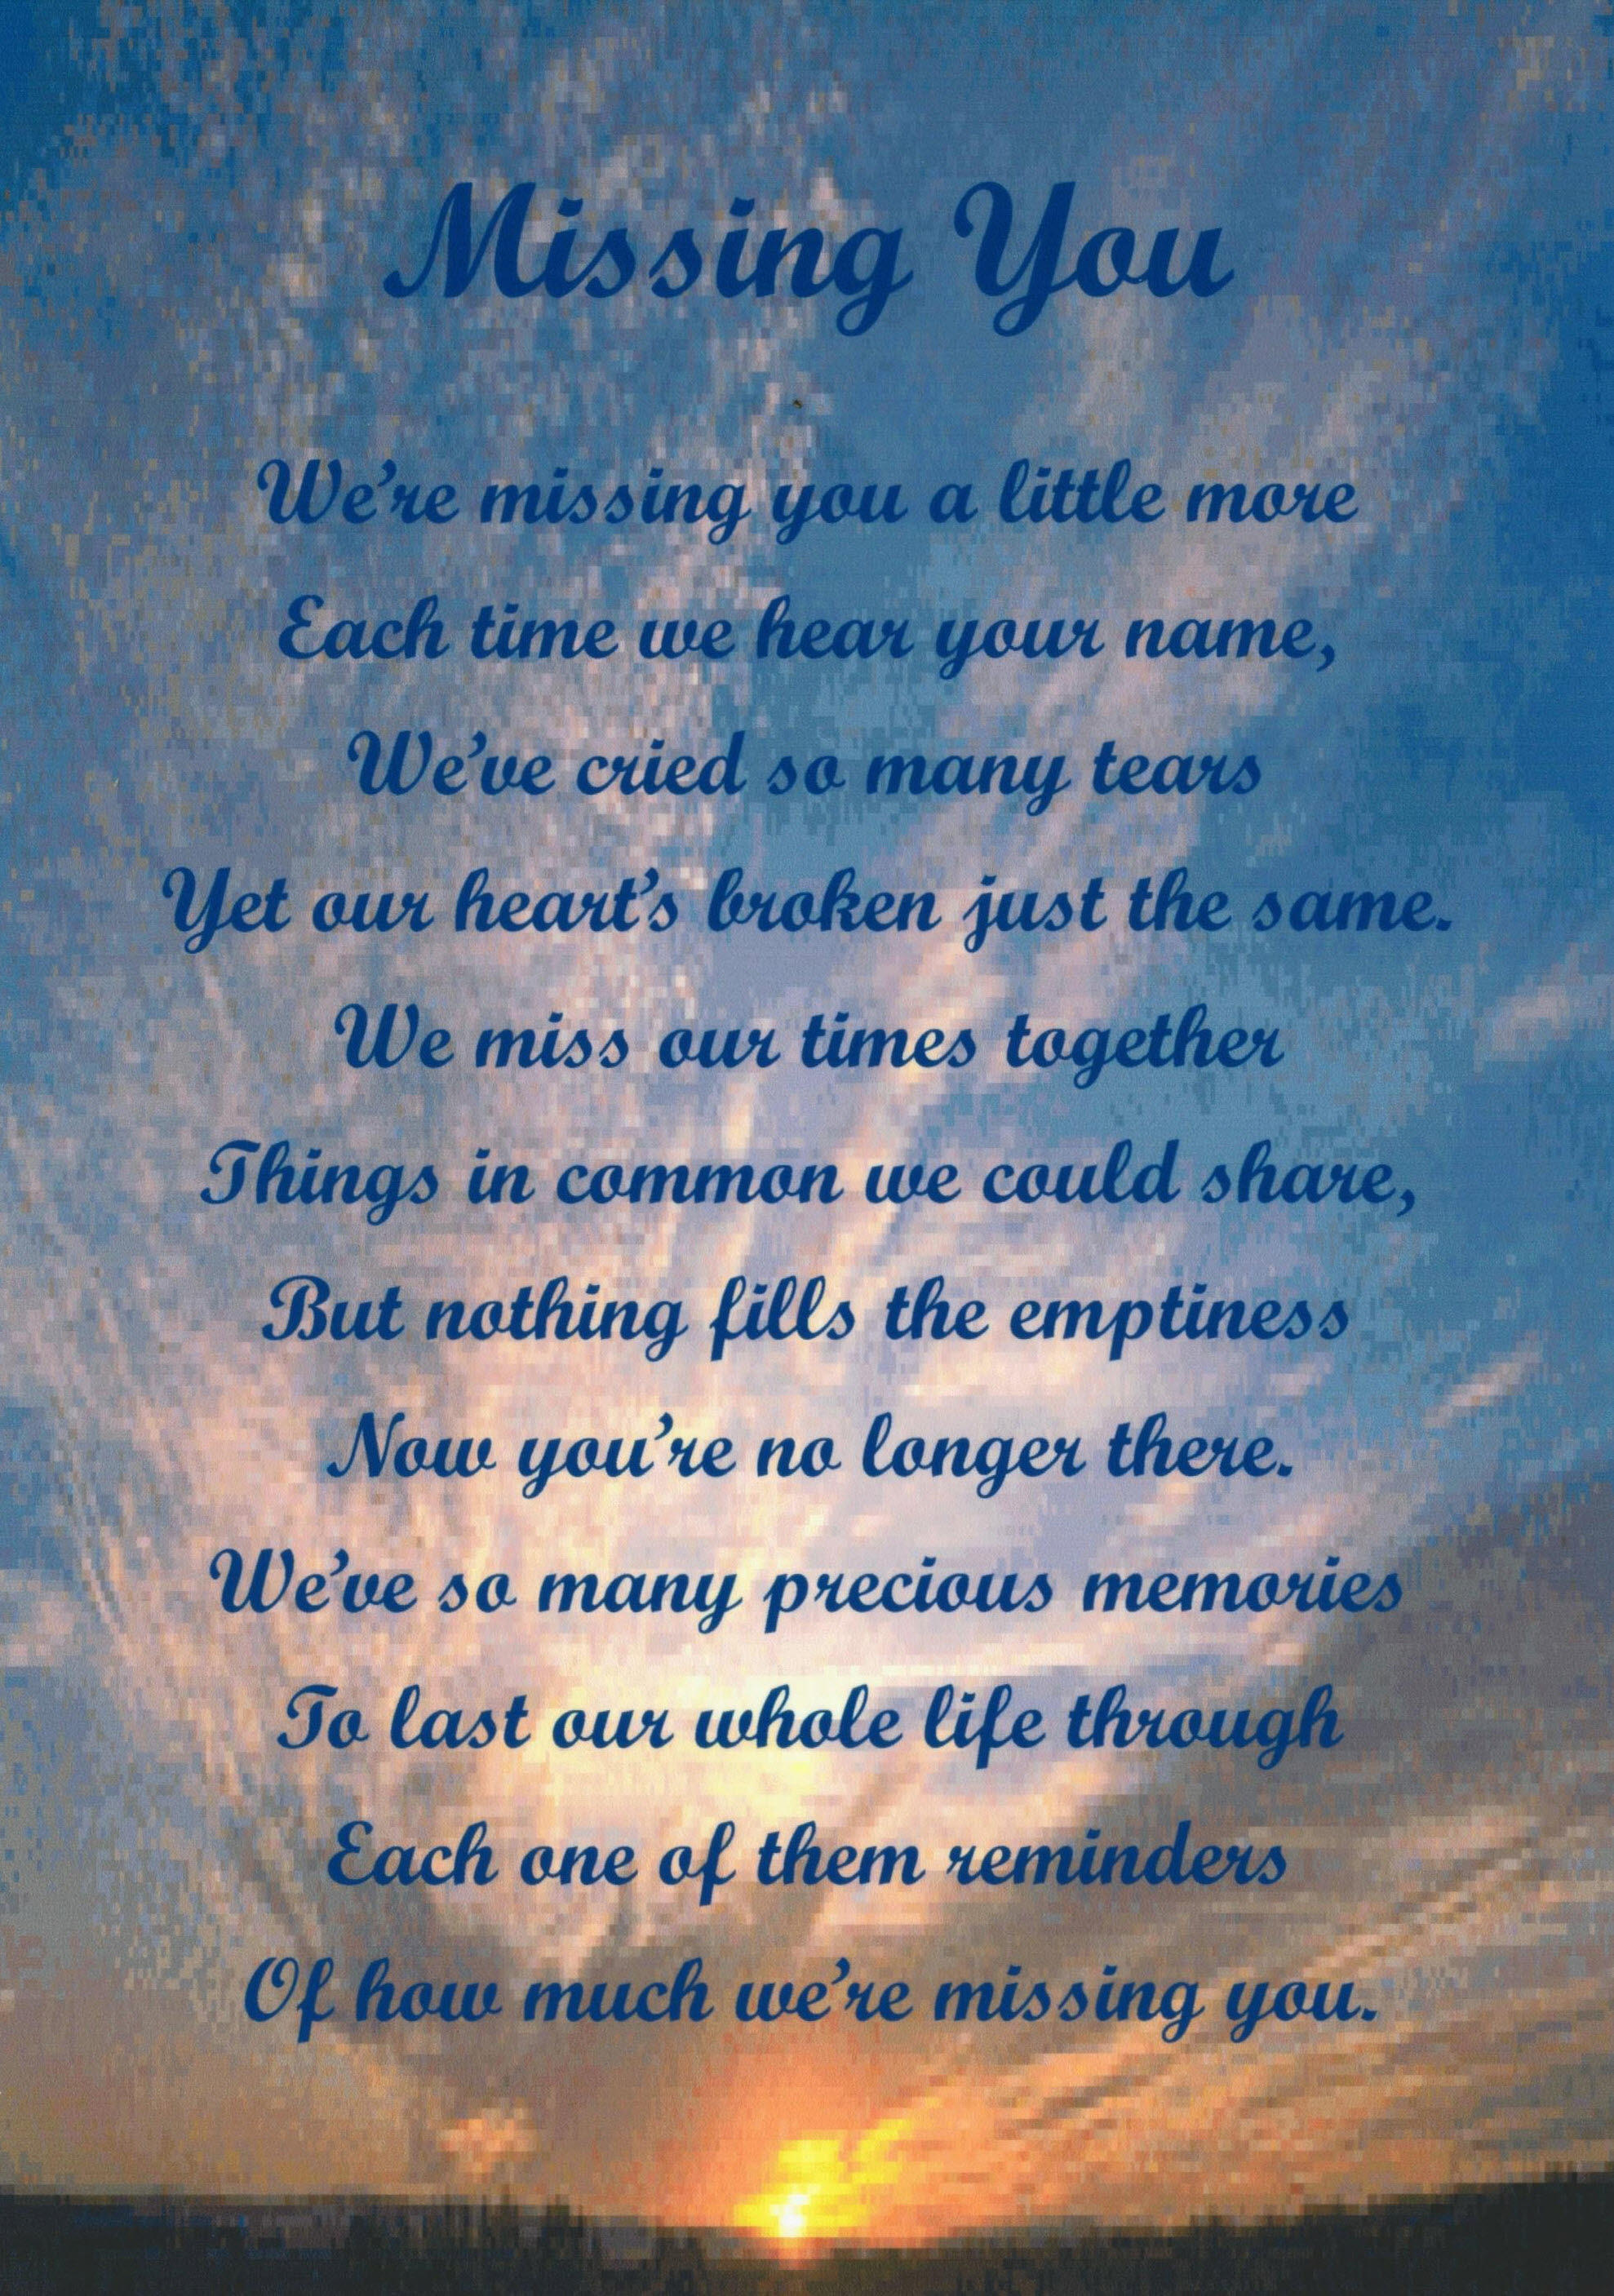 Missing Dead Son Quotes Wwwtopsimagescom